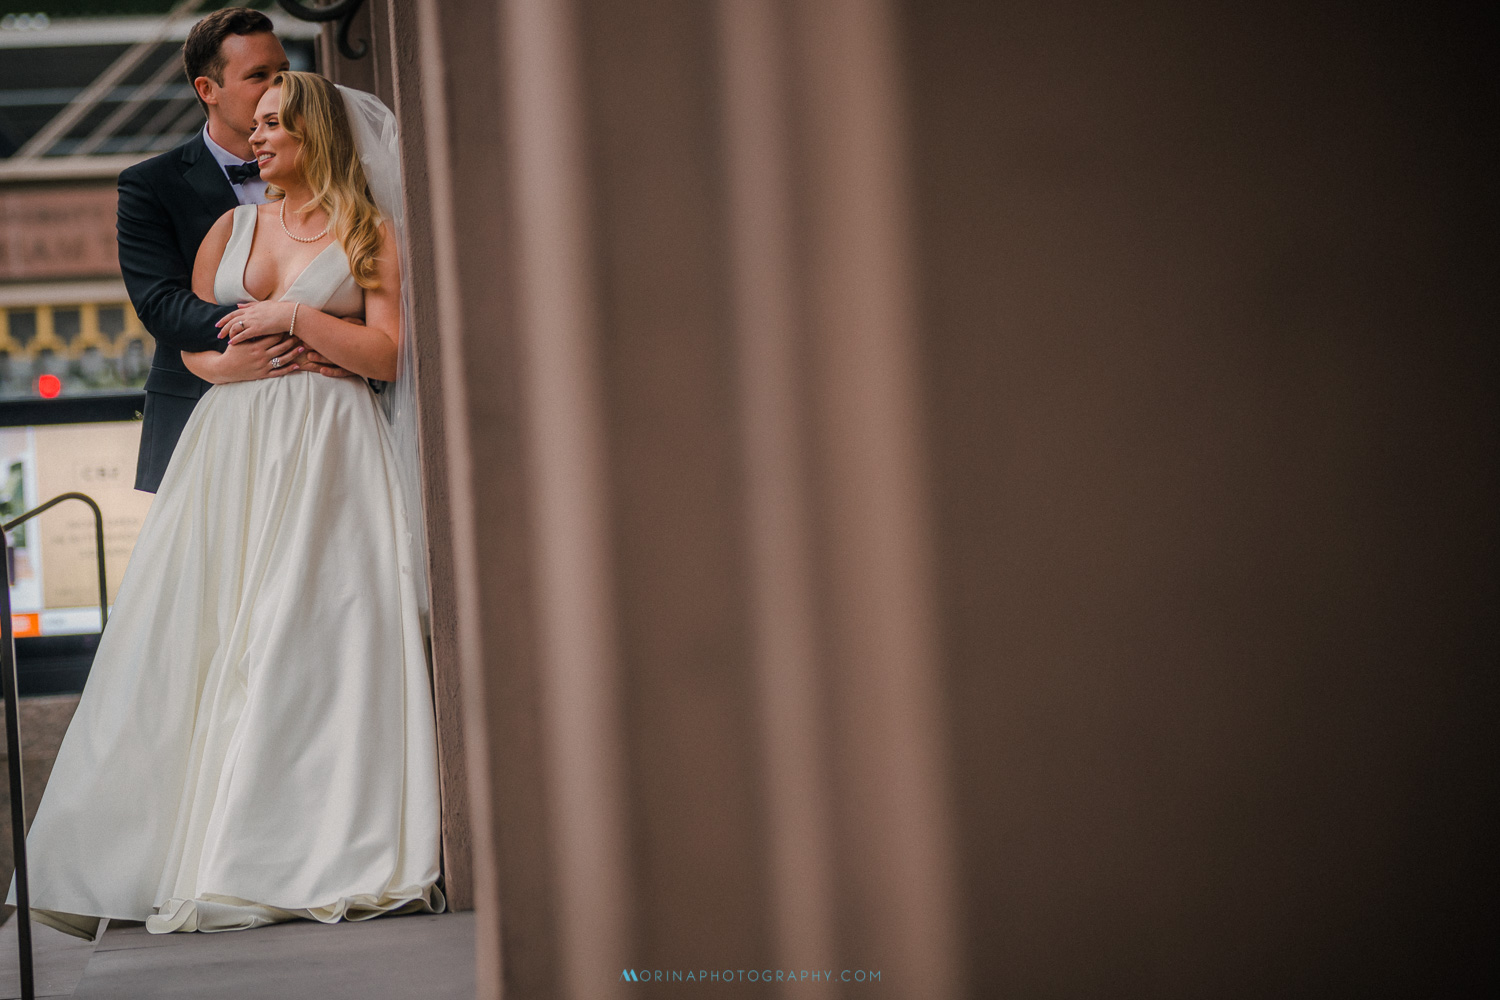 Alexandra & Brian Wedding at Academy of Music32.jpg